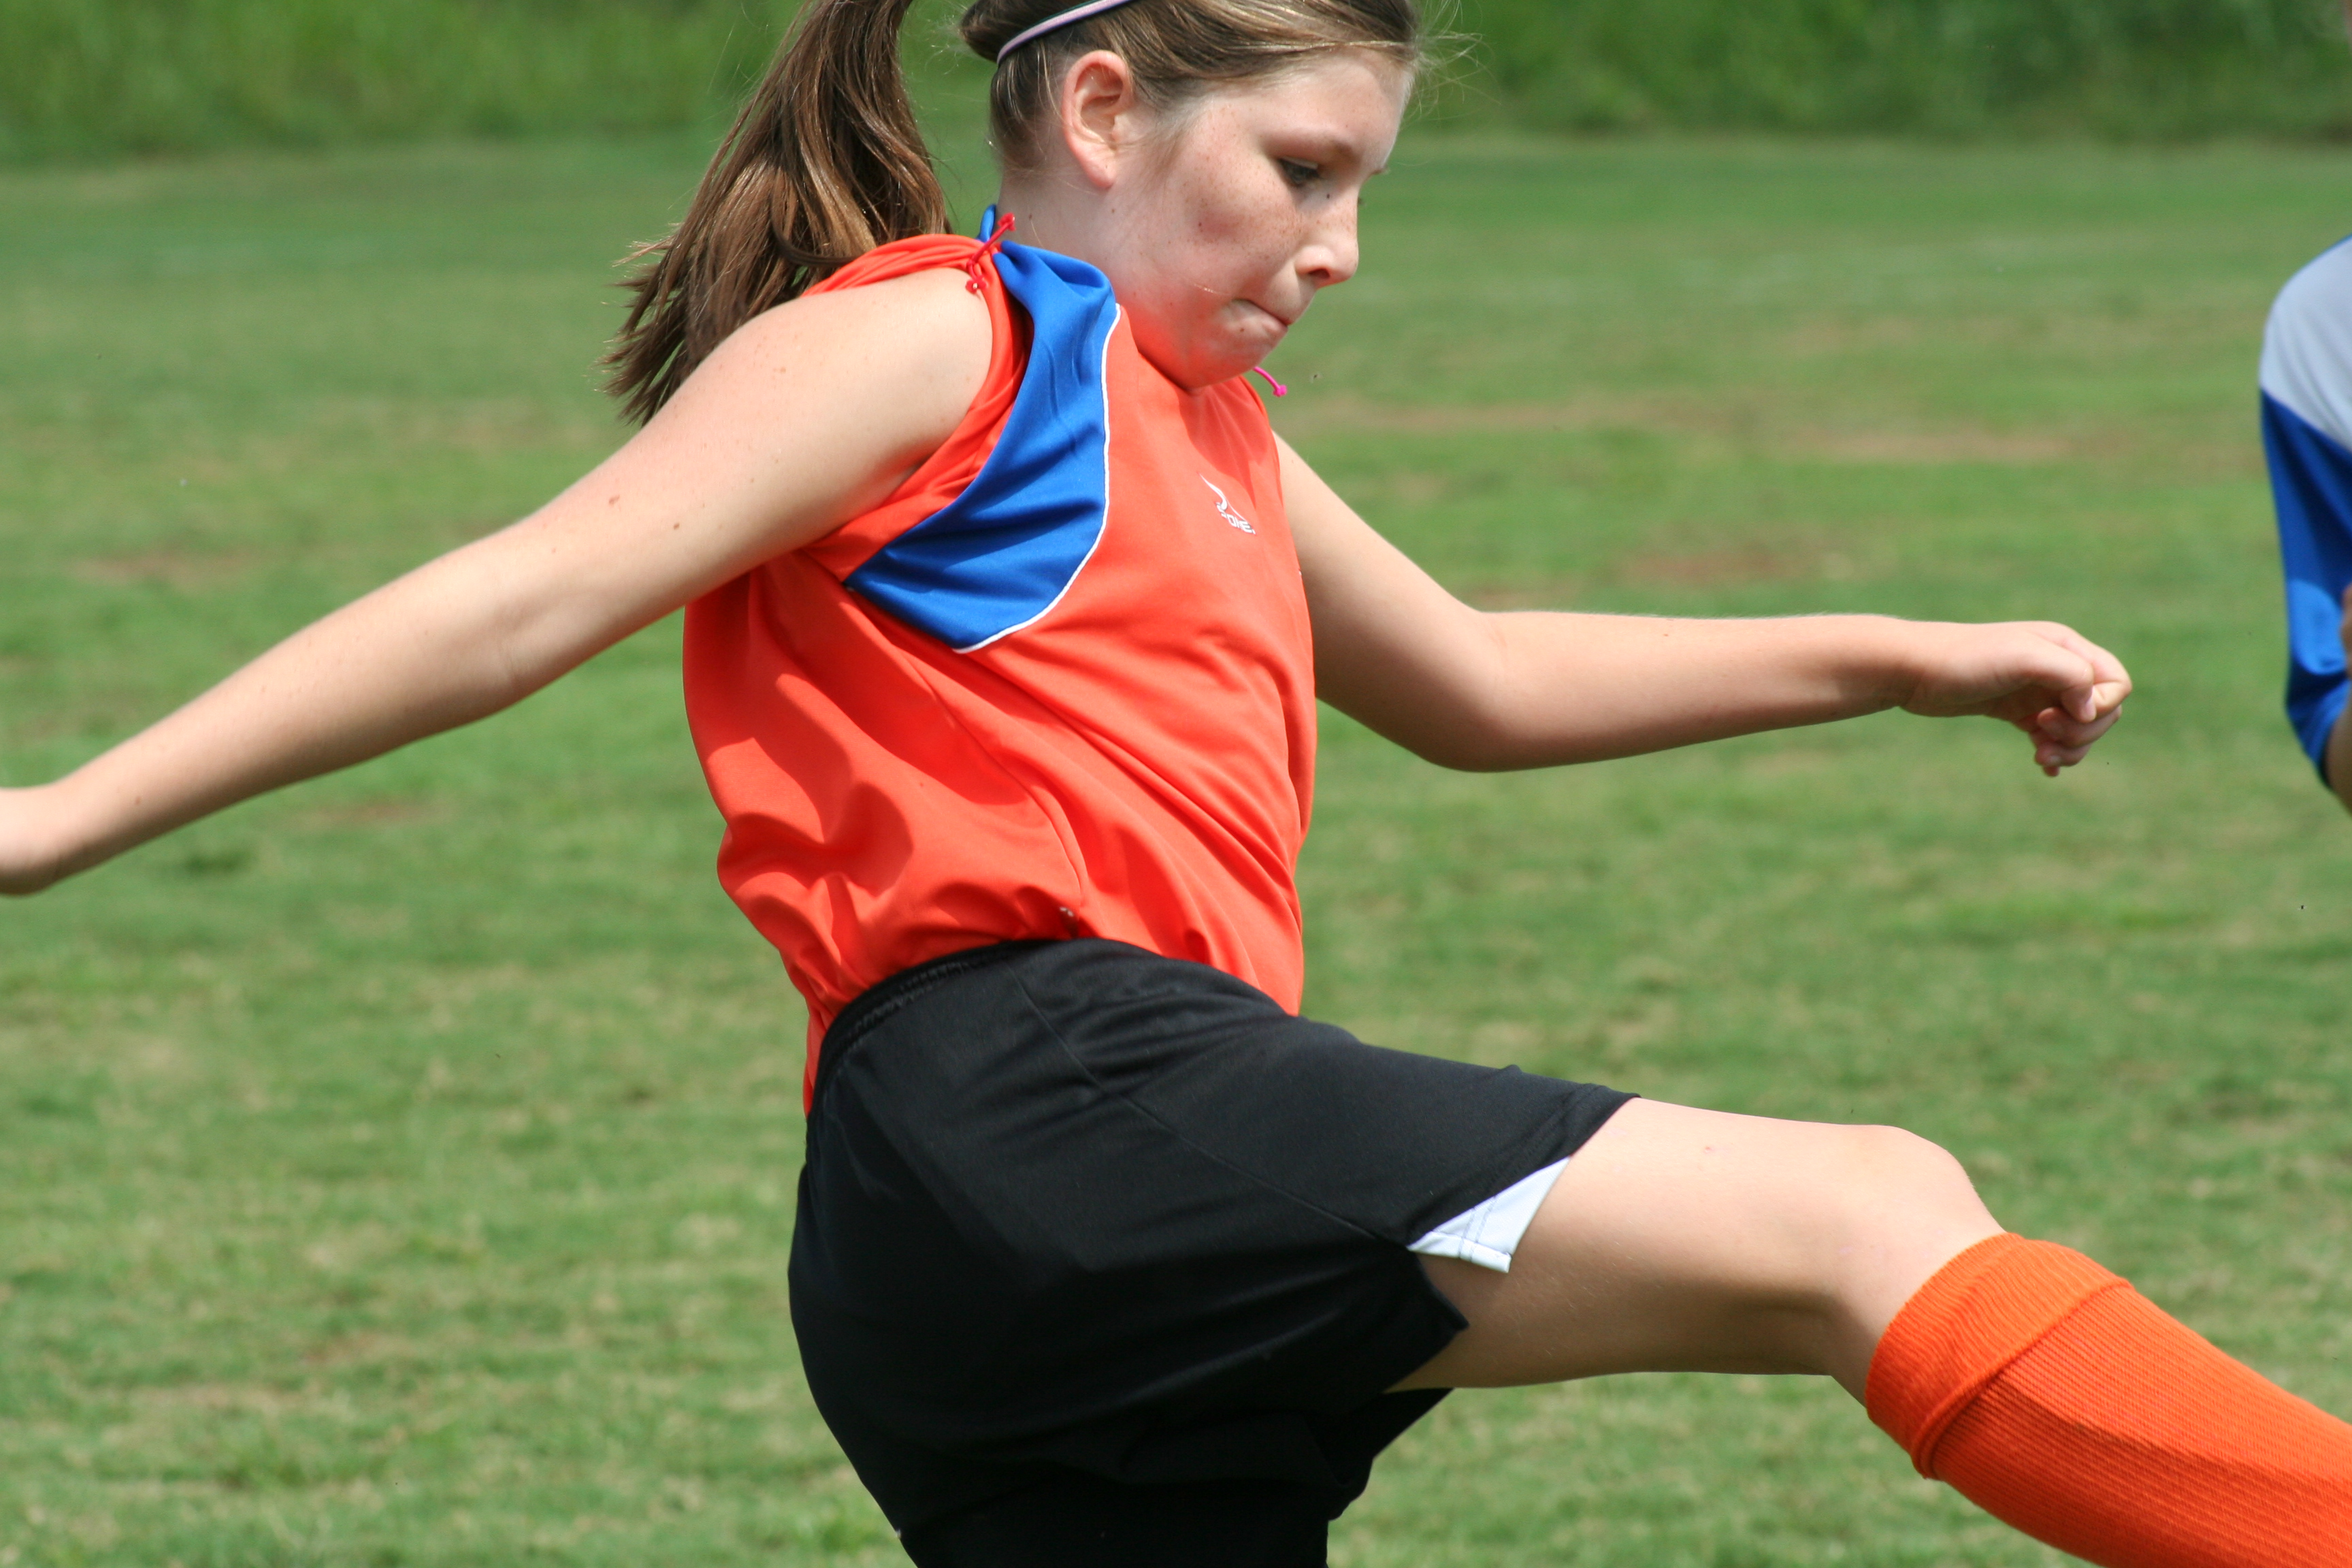 The athlete diet helps a young girl playing soccer -- Eat Like a Champion sports nutrition class.